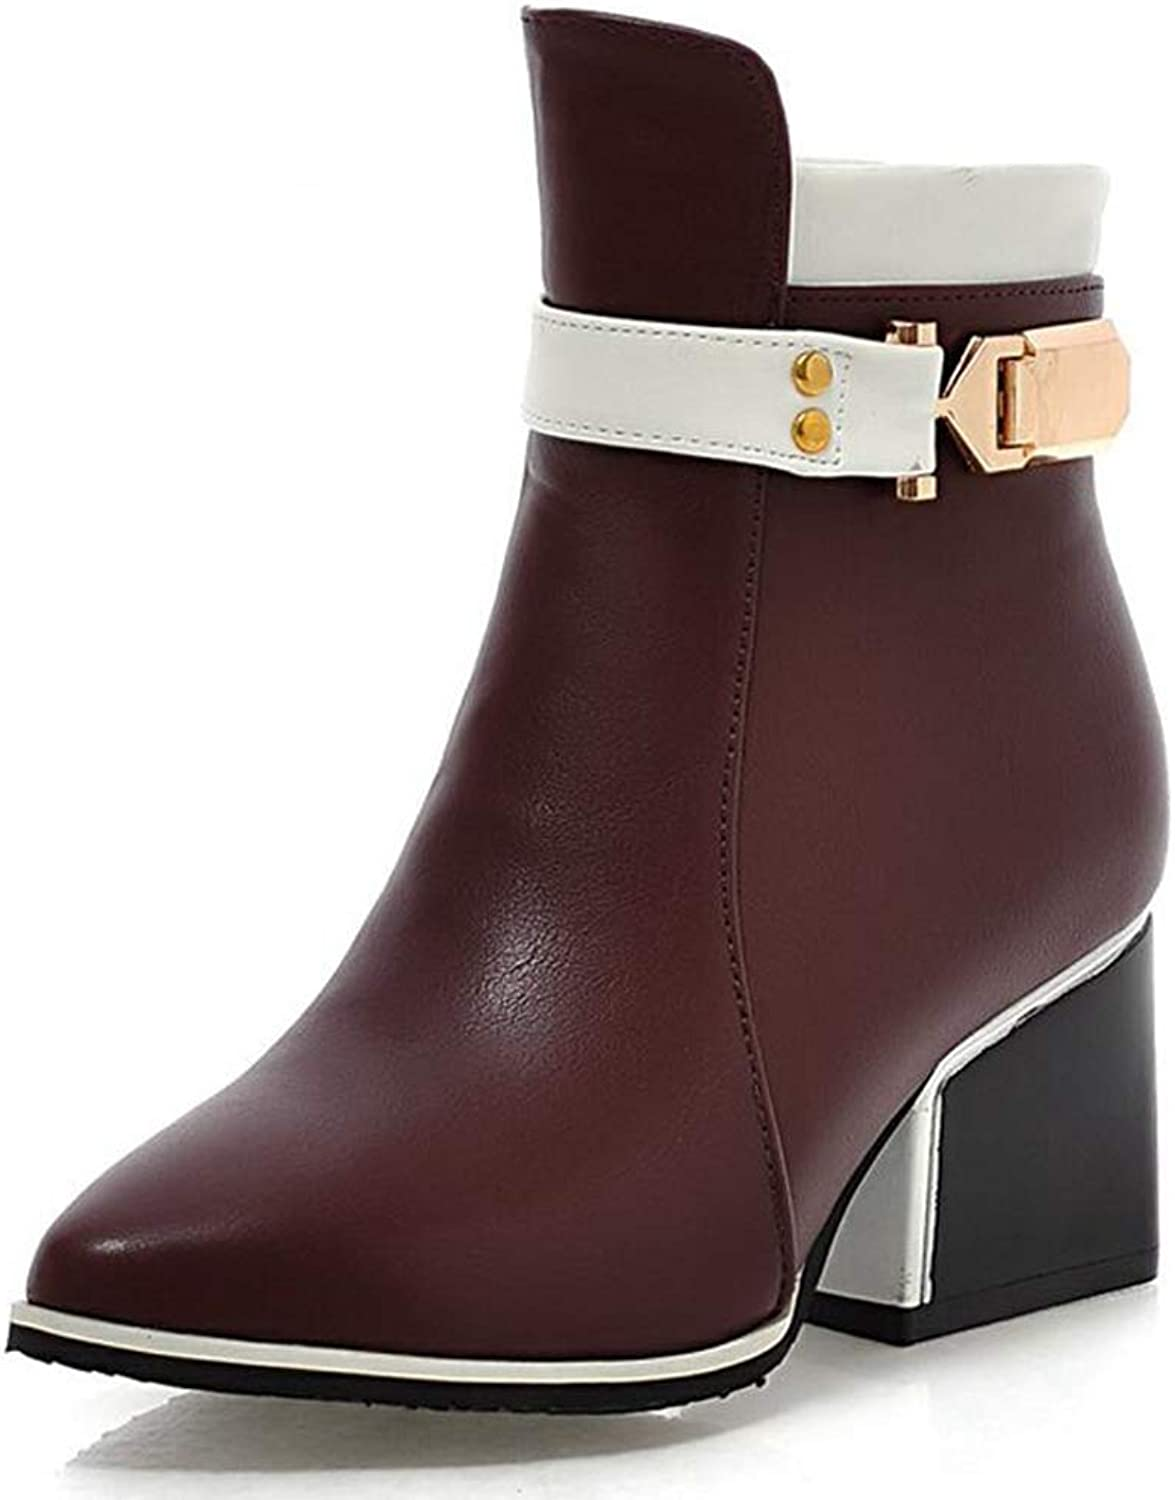 GIY Women's Sexy Winter Warm Fur Ankle Boots Buckle Strap Zip Chelsea Boots Motorcycle Pointed Toe High-Heels Martin Boots